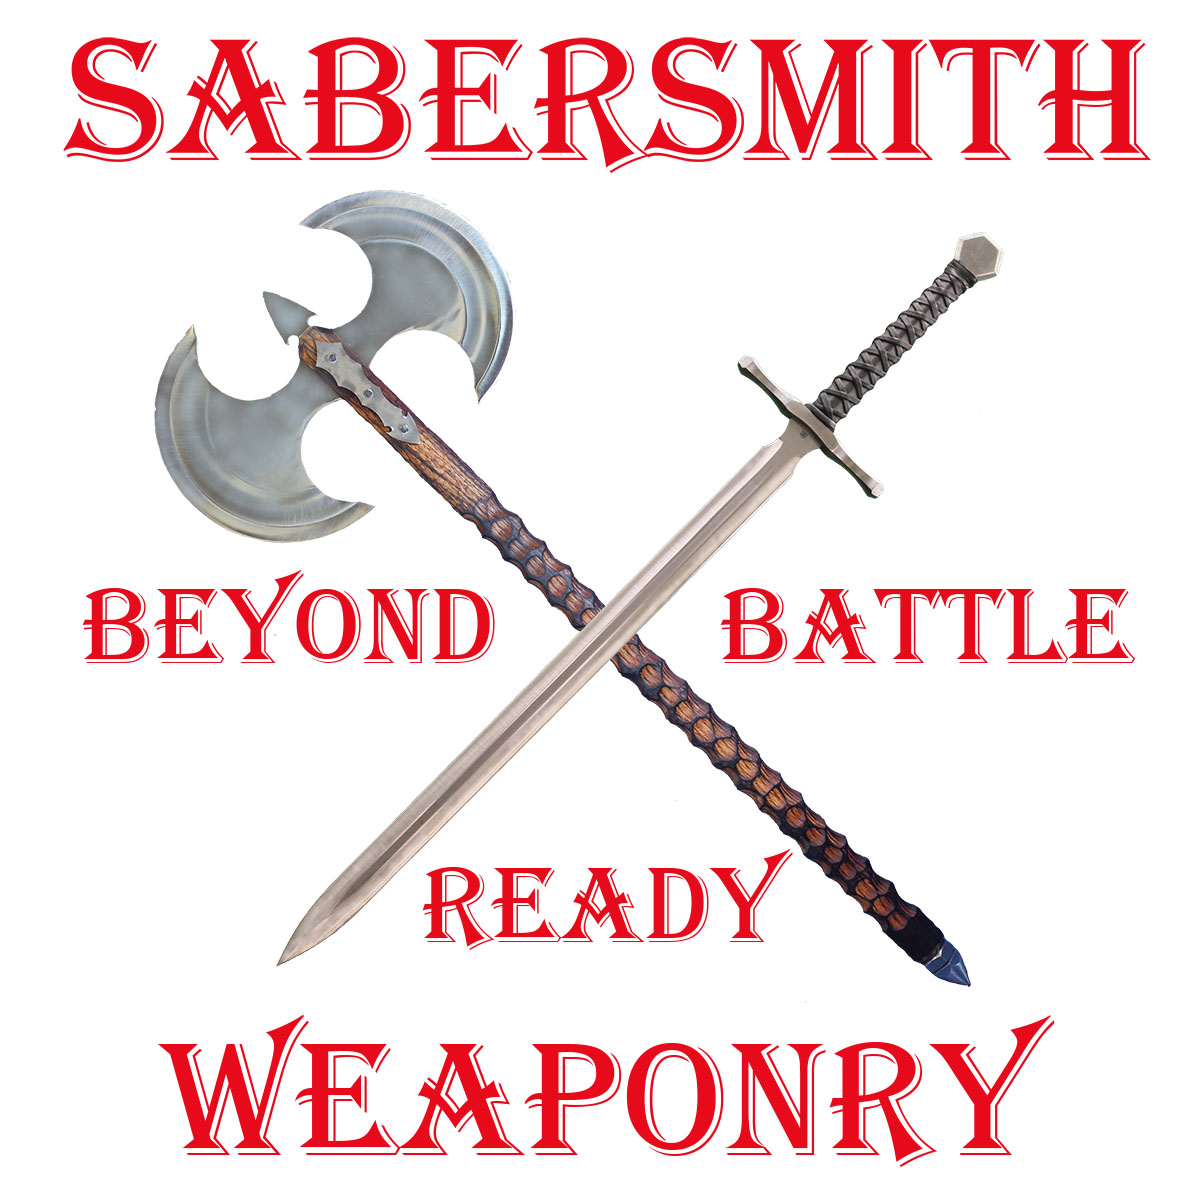 Sabersmith Weaponry: beyond battle ready